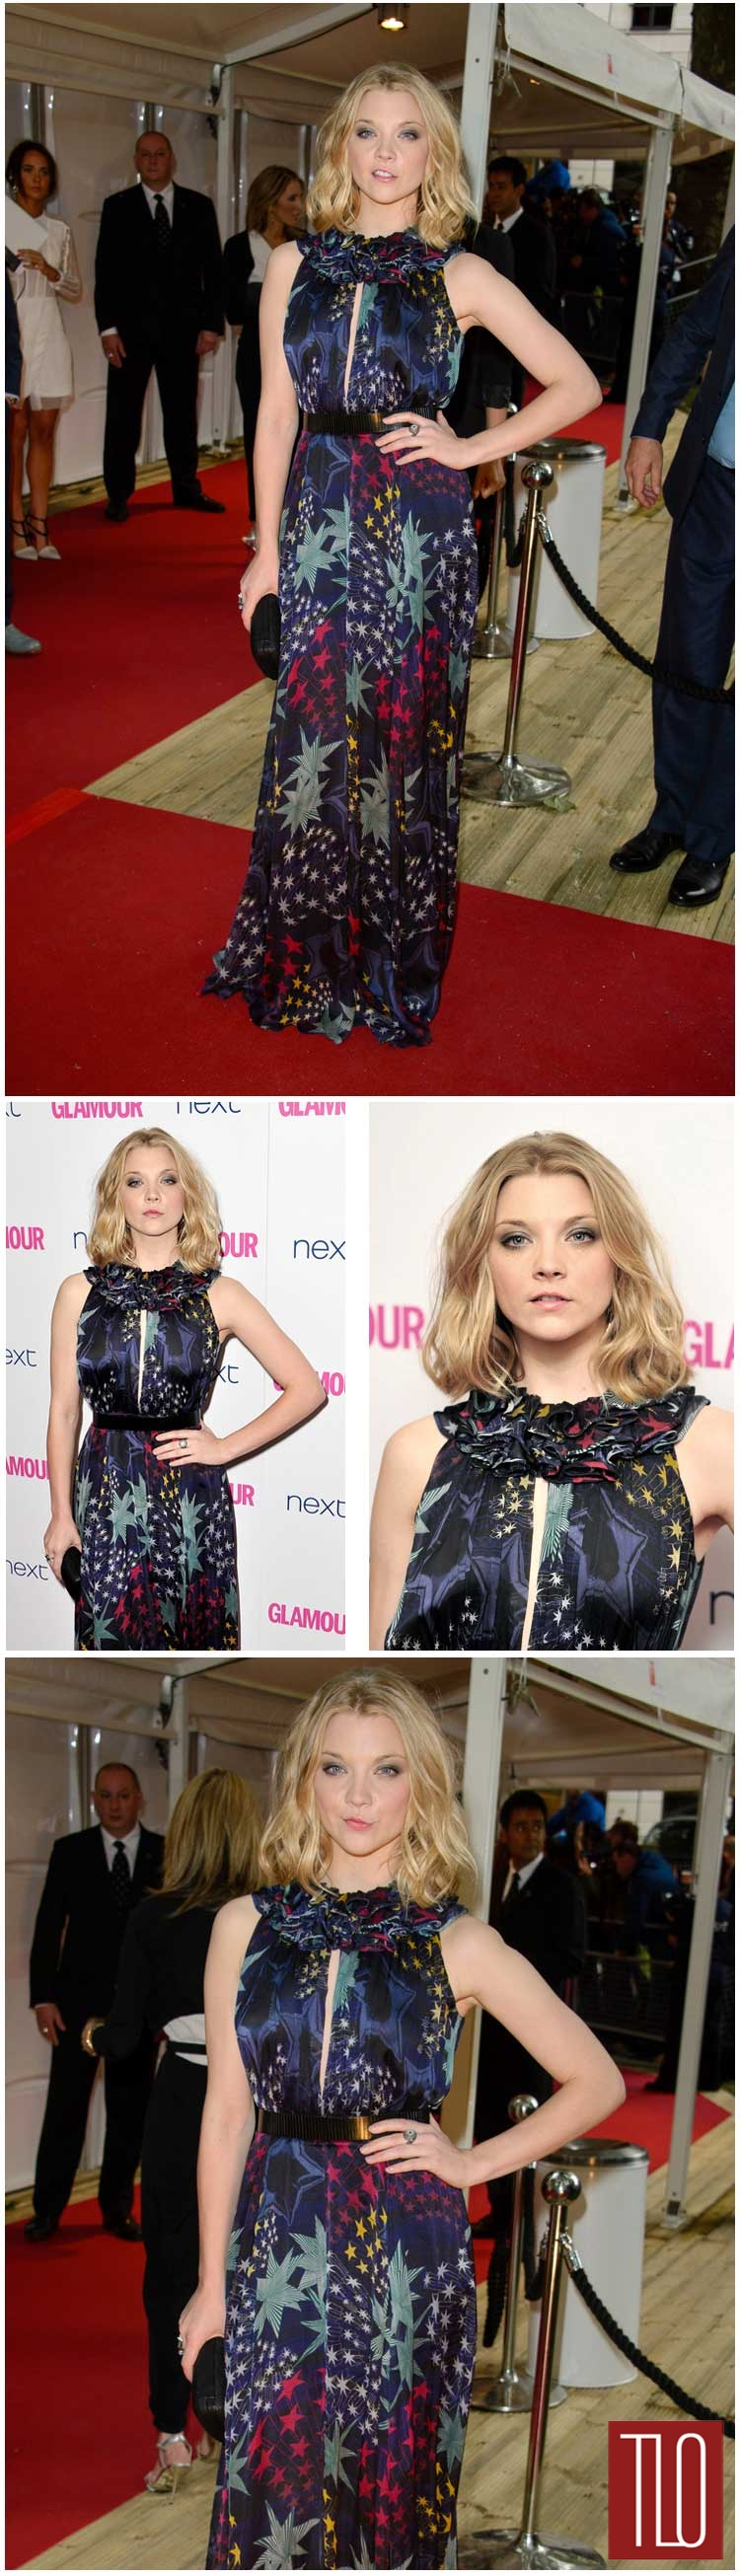 Natalie-Dormer-Matthew-Williamson-Glamour-Women-Year-Awards-2014-Tom-Lorenzo-Site-TLO (2)